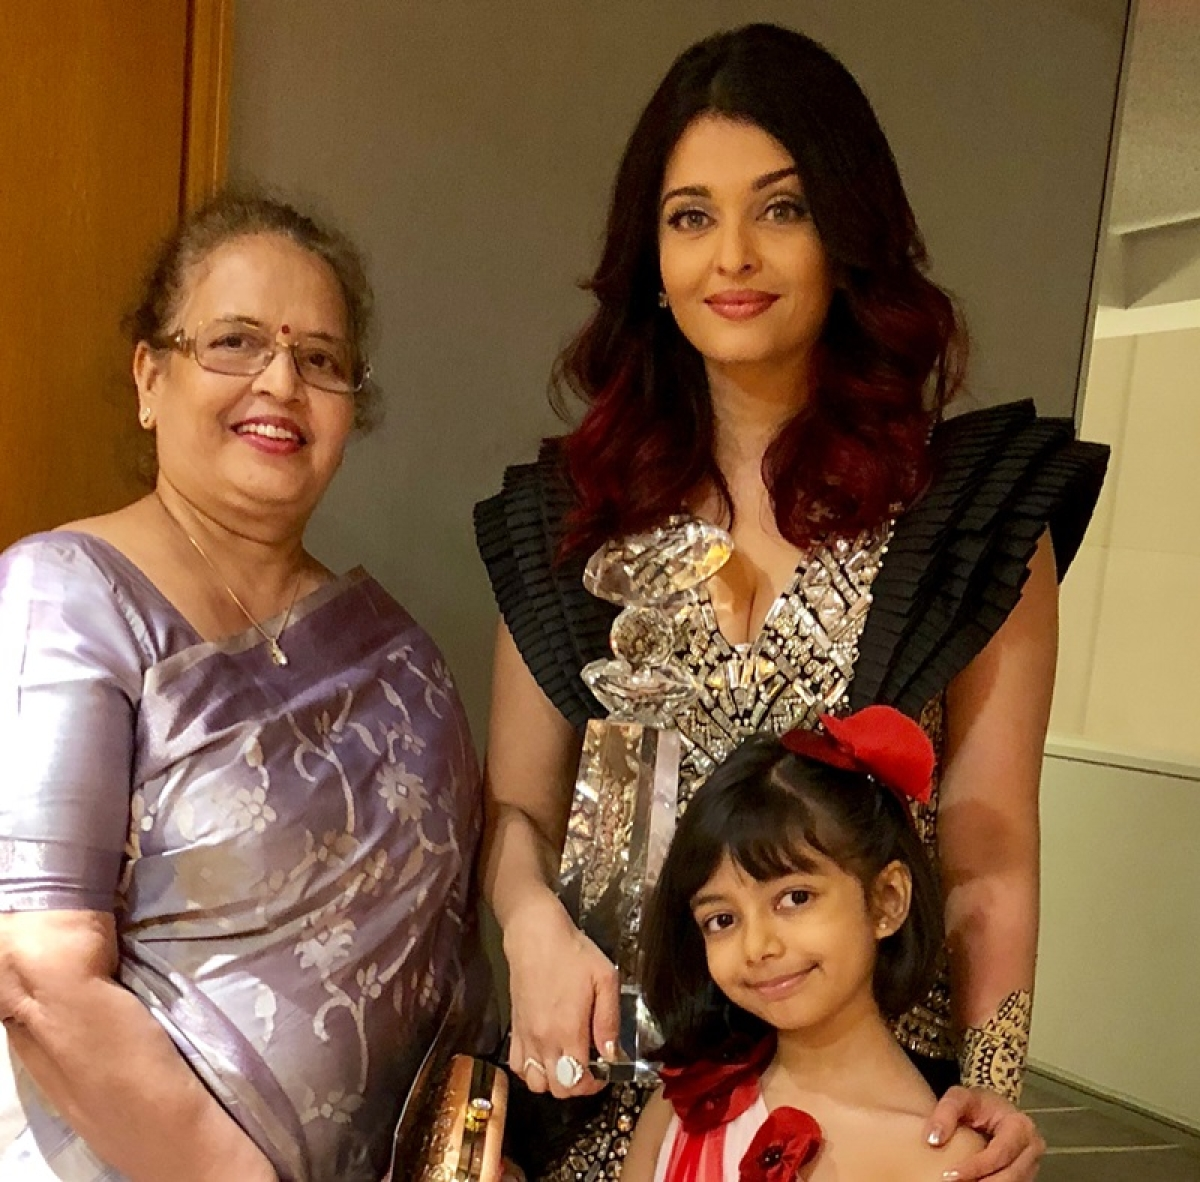 Watch video! Aishwarya Rai Bachchan not a good mother to Aaradhya? Trolls give her a lesson on parenting